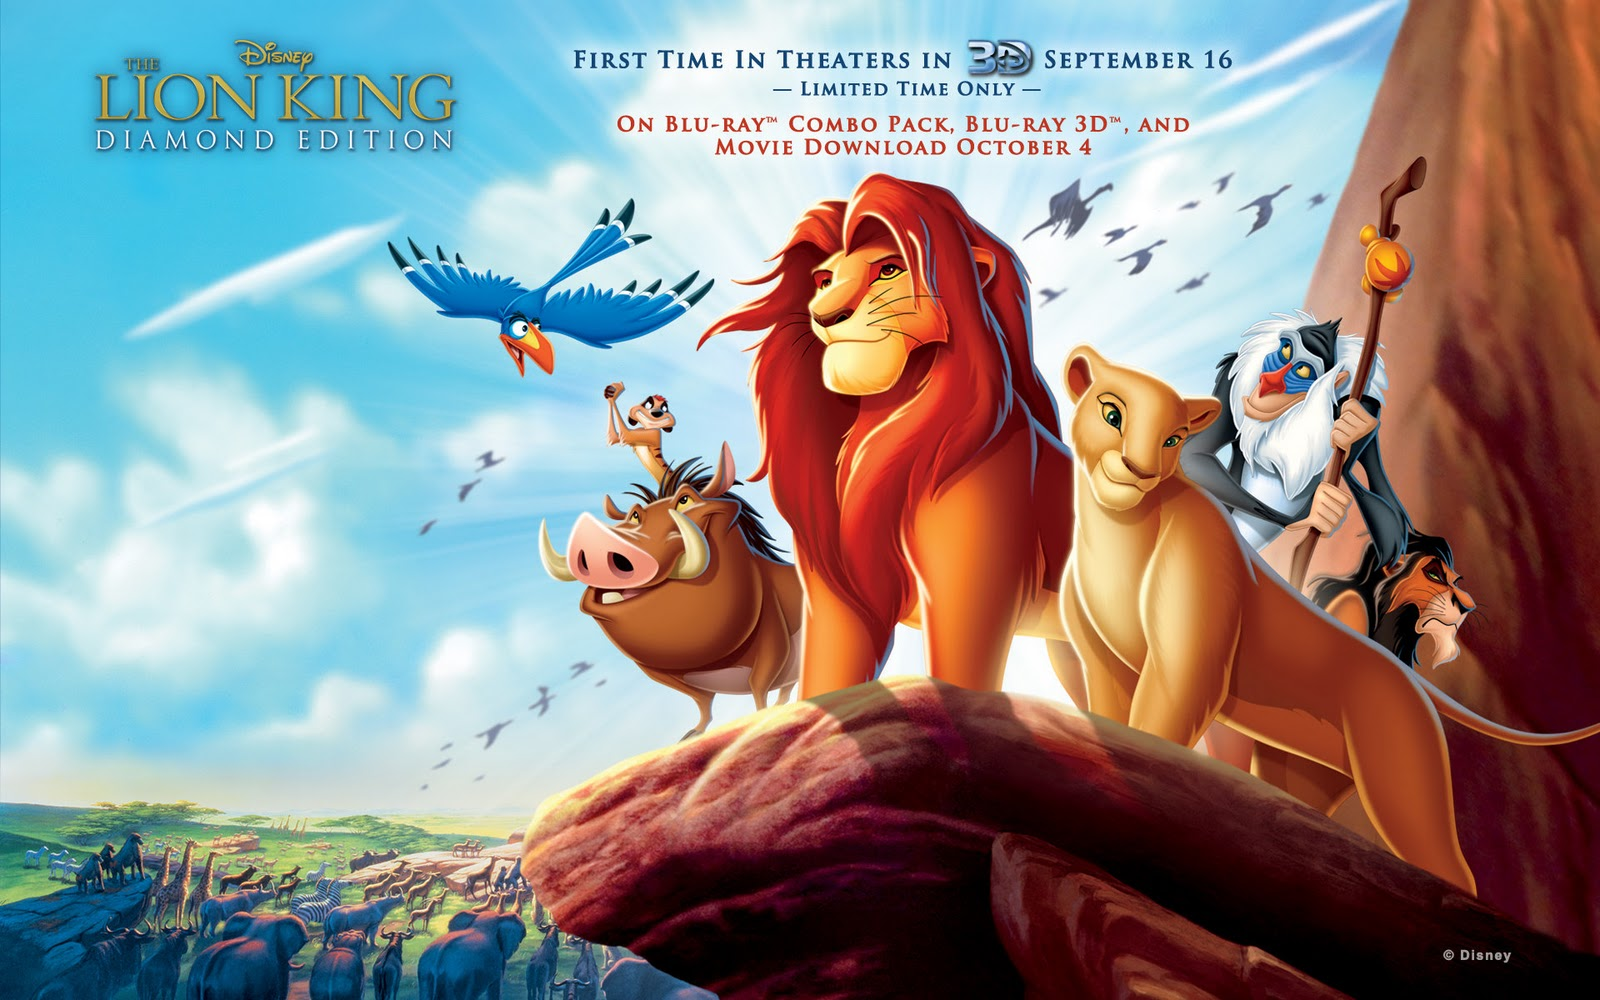 http://2.bp.blogspot.com/-RN6s3oaW3Uw/Tvbz4EqnM6I/AAAAAAAACUg/eaHIhF79KD4/s1600/The-Lion-King-3D-Wallpaper-01.jpg